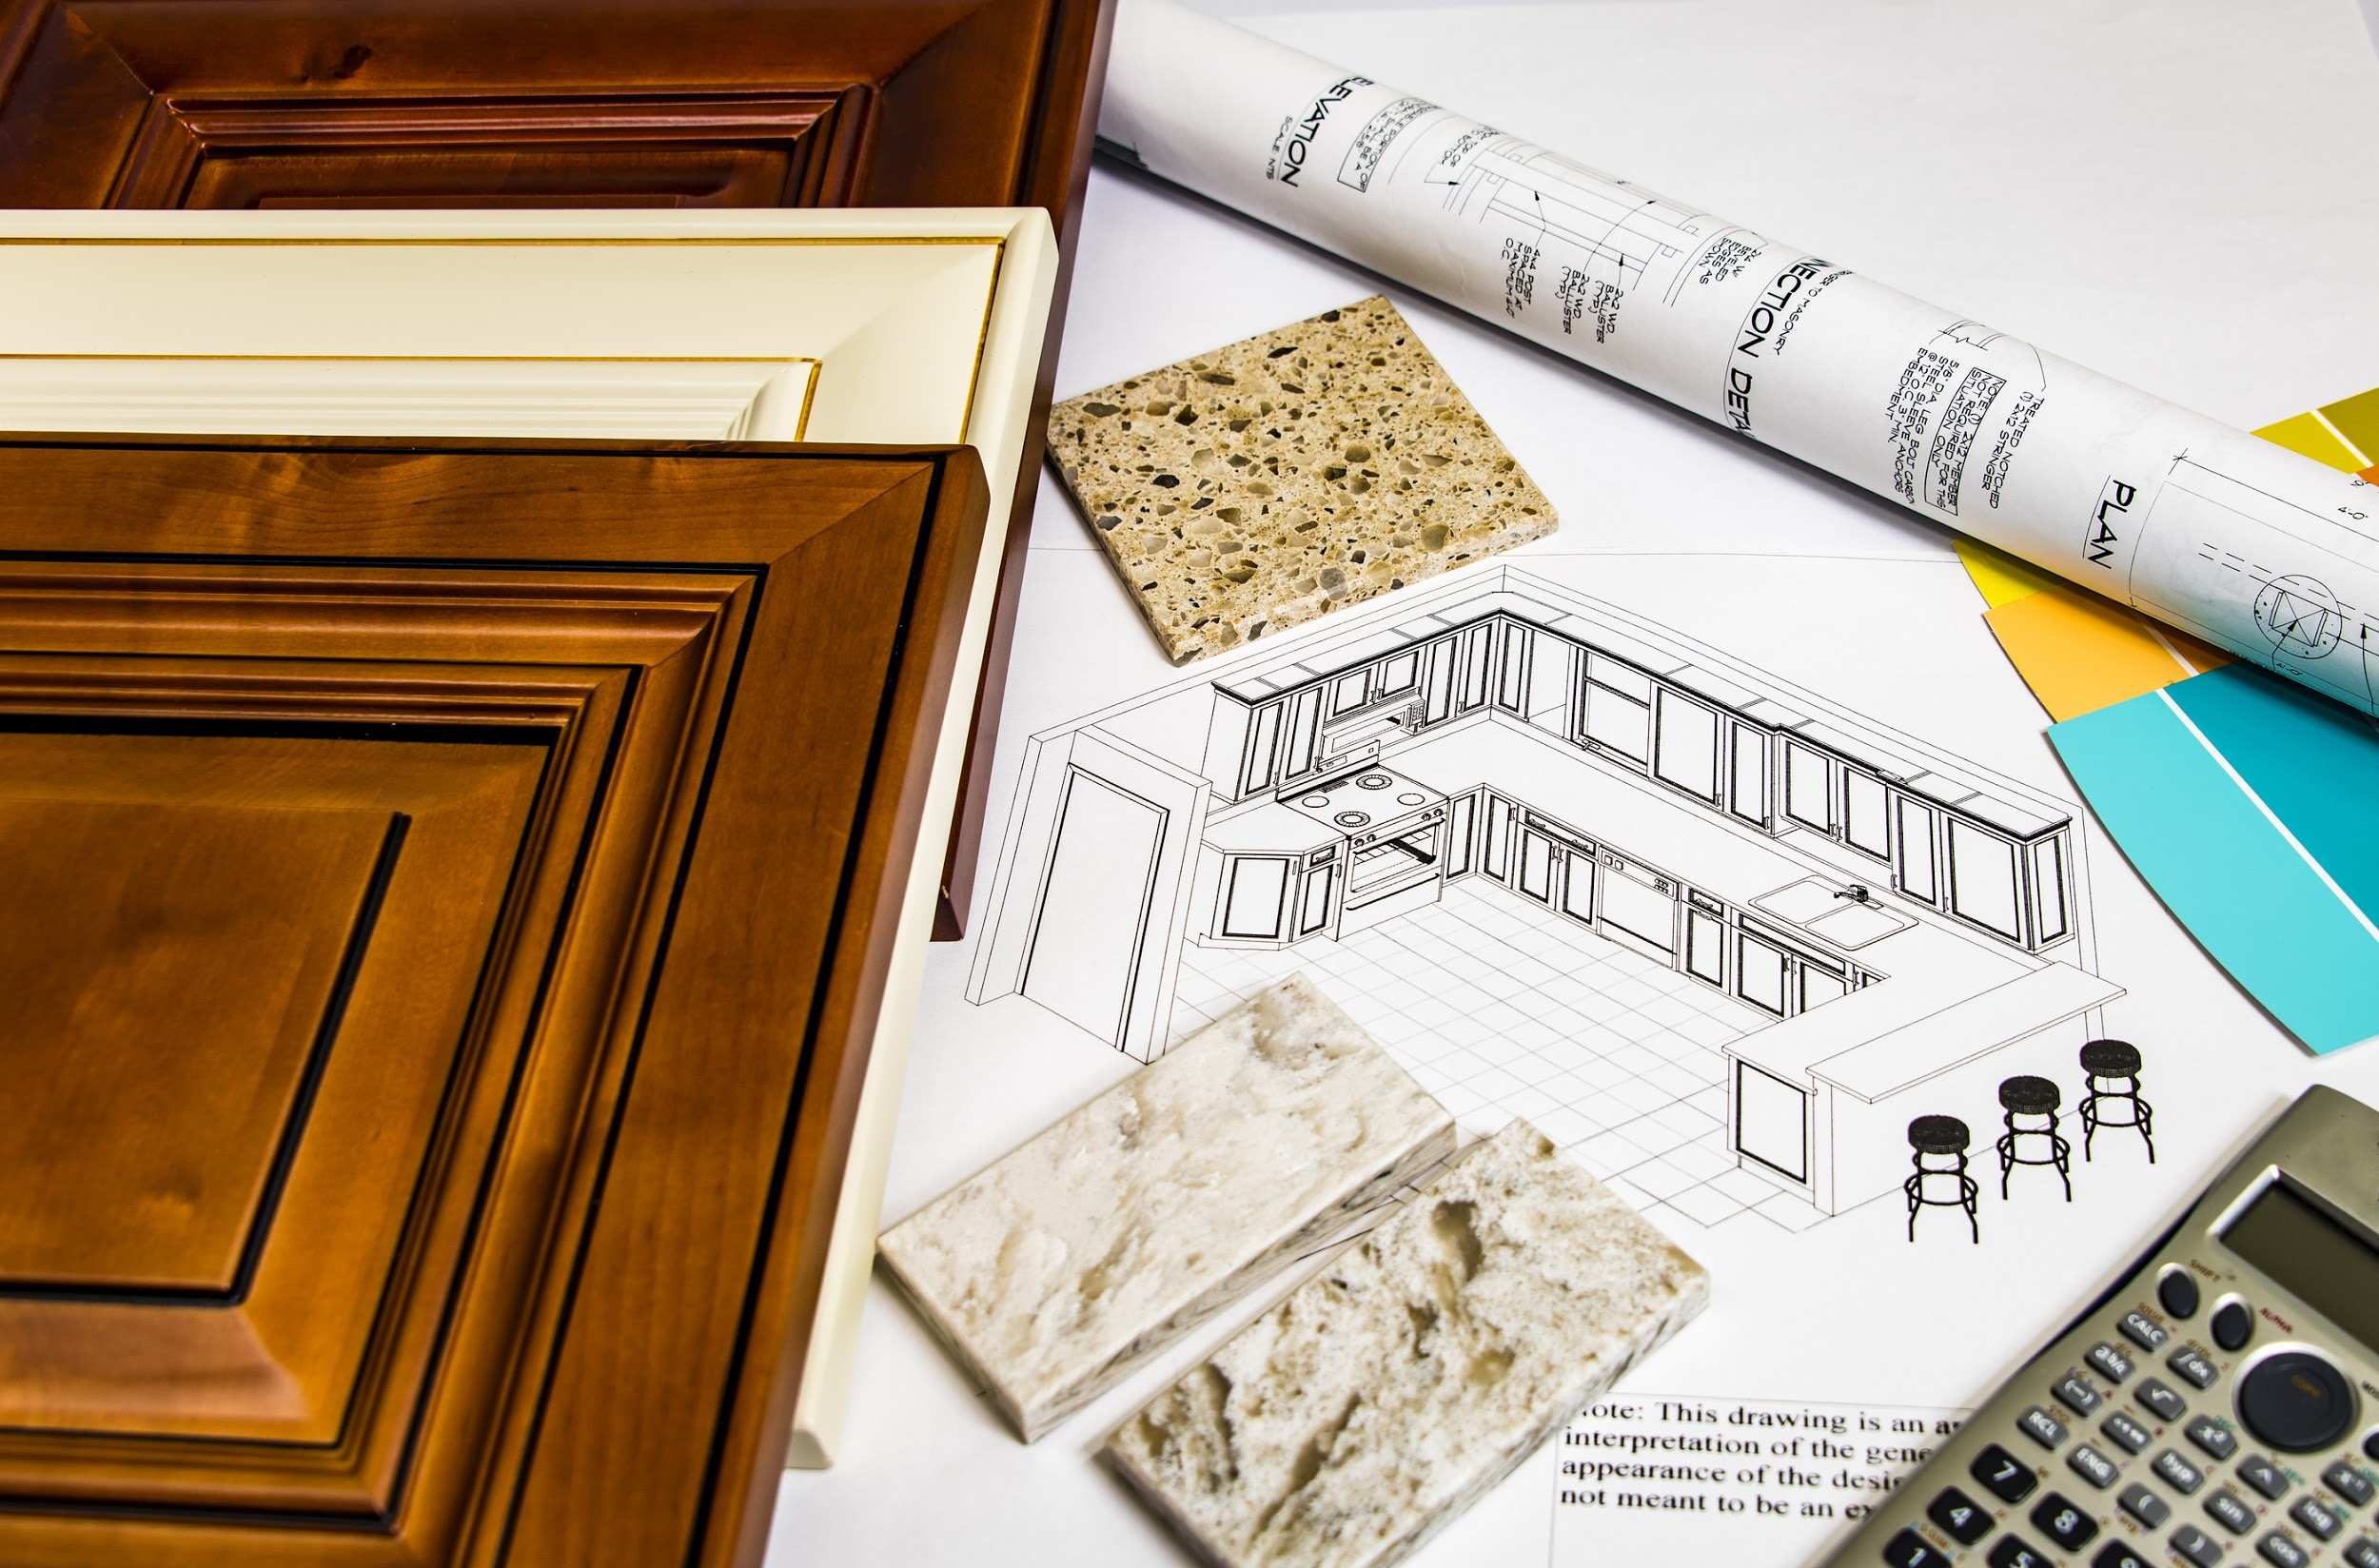 Surprising Custom Cabinet Makers For New Homes St George Ut Contractors Home Interior And Landscaping Ponolsignezvosmurscom